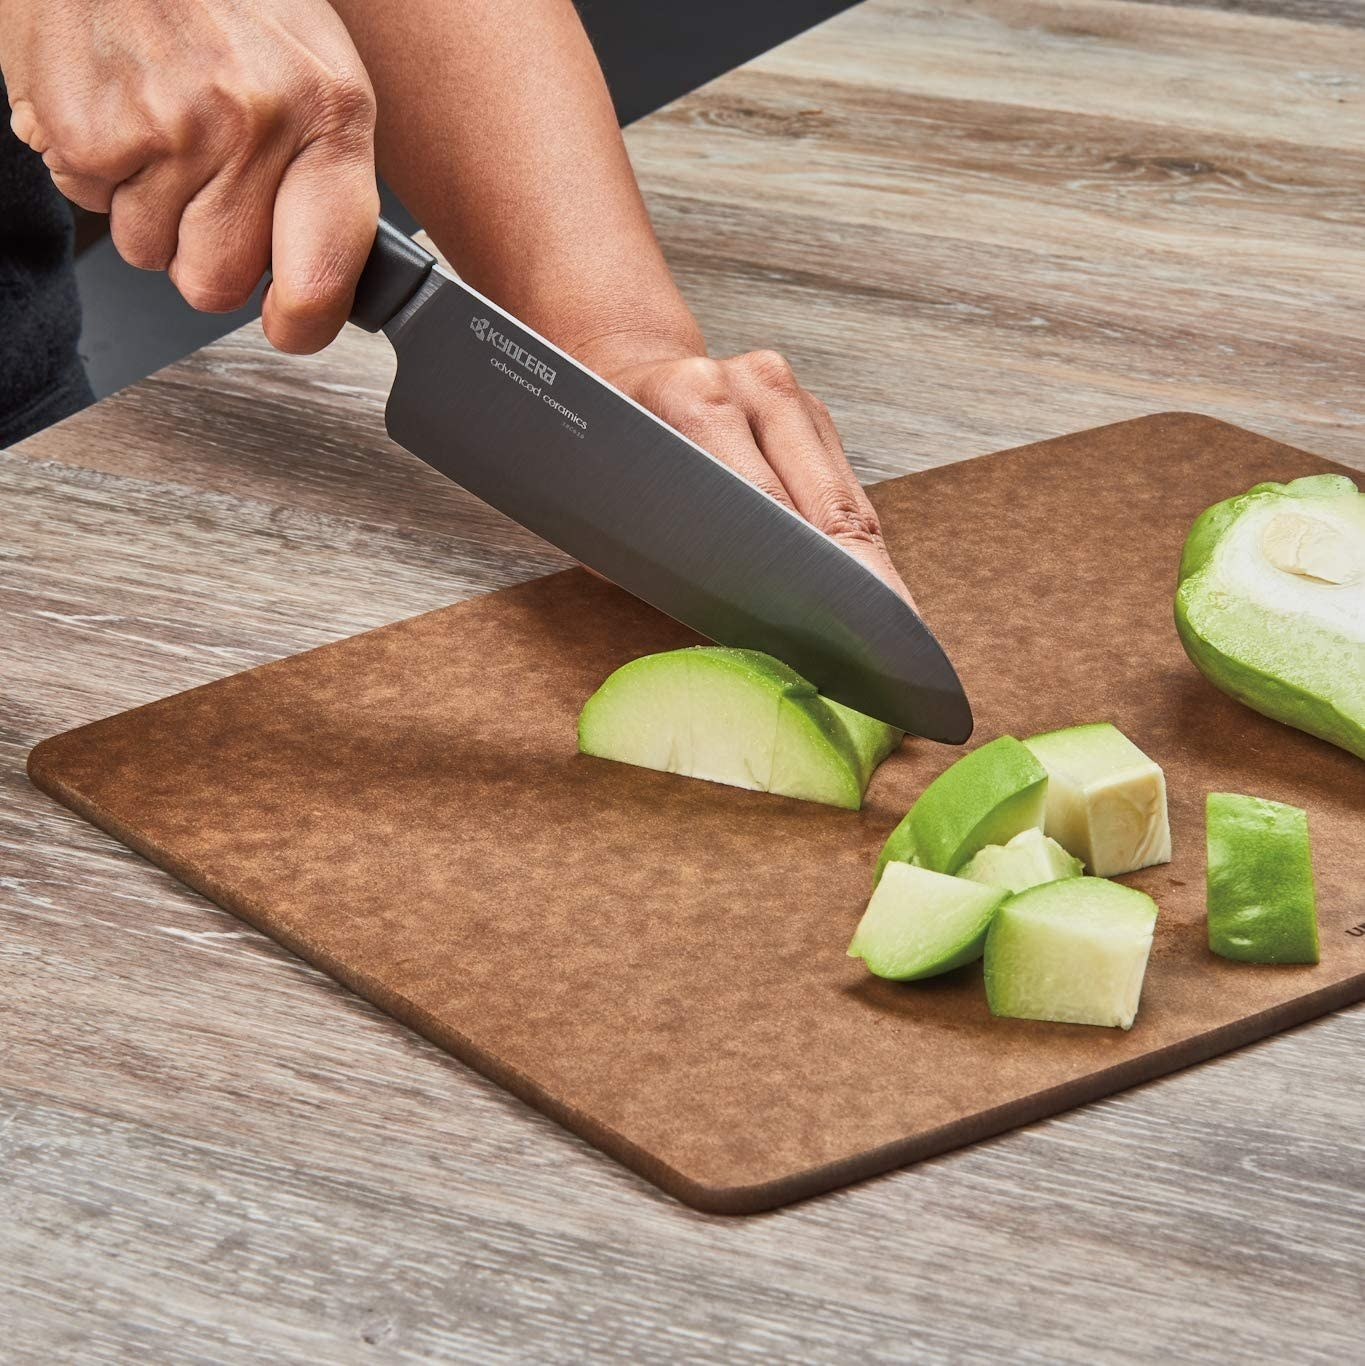 Person cutting vegetables with black knife